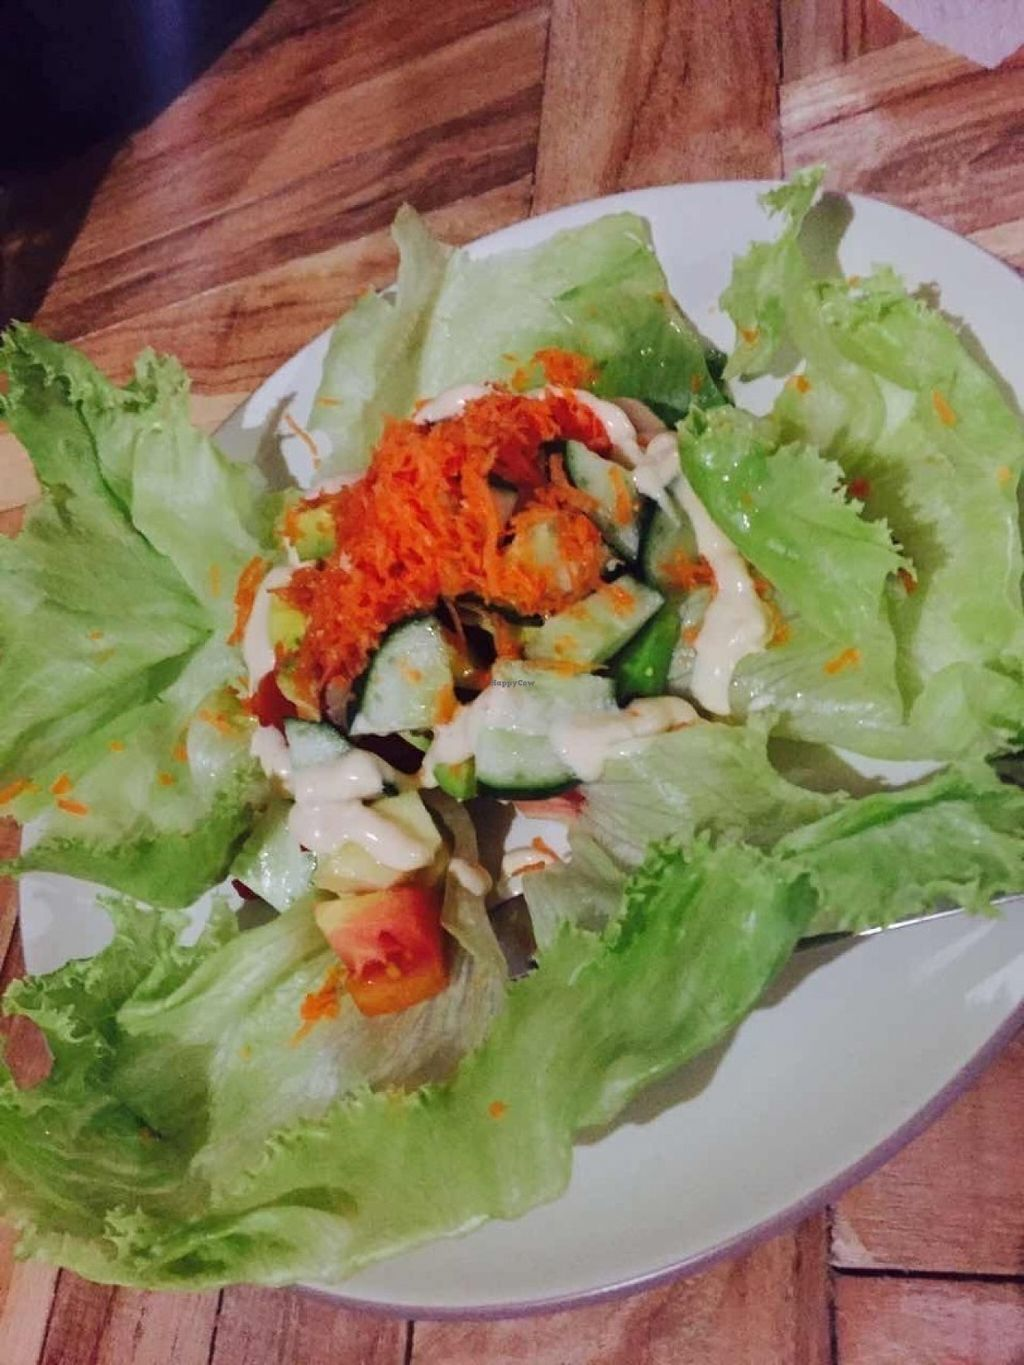 """Photo of Bali Maitreya Cafe  by <a href=""""/members/profile/rodgo"""">rodgo</a> <br/>Green salad  <br/> July 15, 2016  - <a href='/contact/abuse/image/75459/159943'>Report</a>"""